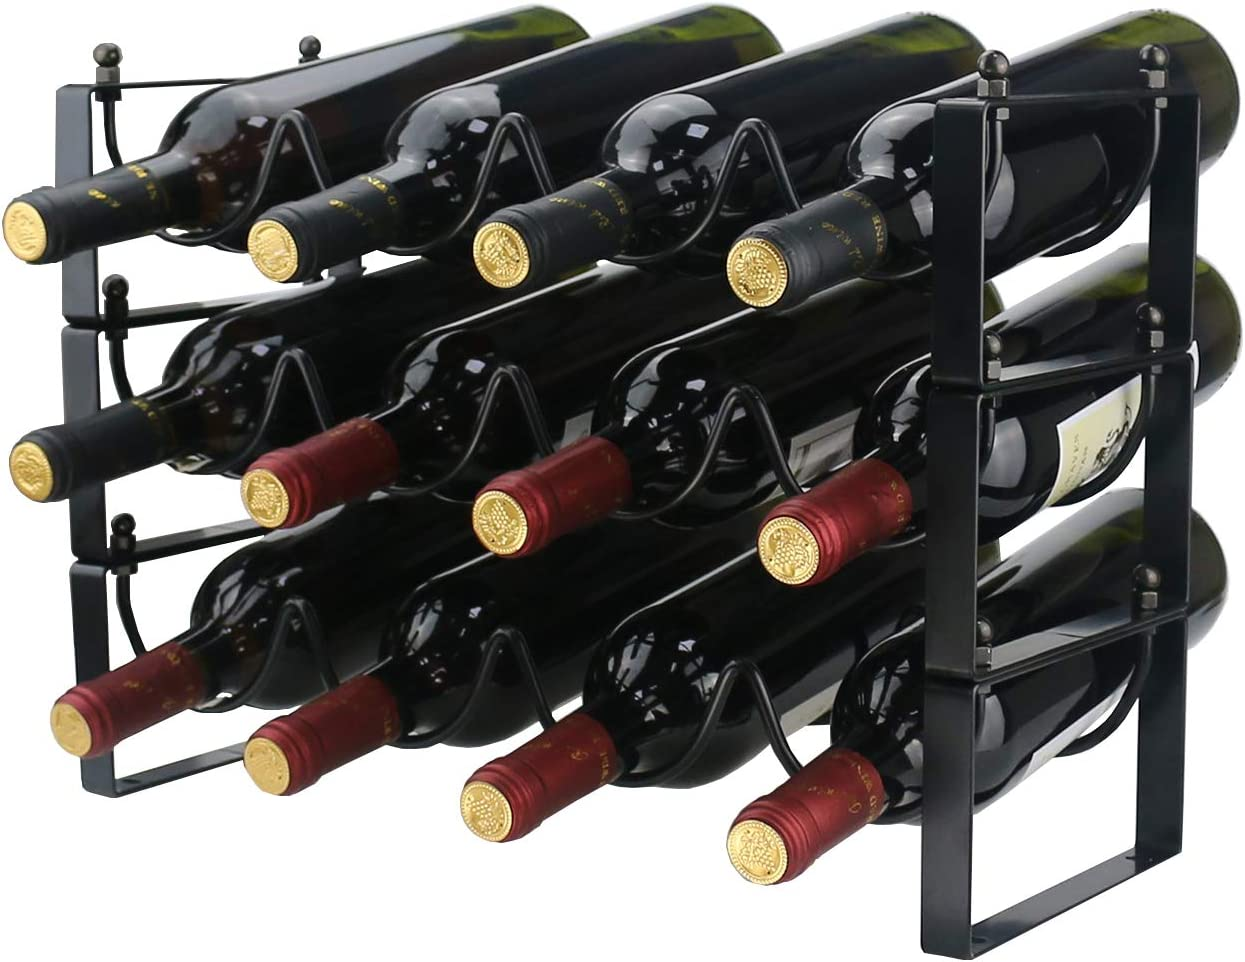 Ogrmar 3 Tier Stackable Wine Rack Countertop Cabinet Wine Holder Wine Storage Shelf Hold 12 Bottles for Kitchen, Bar, Pantry, Wine Cellar, Basement, Countertop, Cabinet